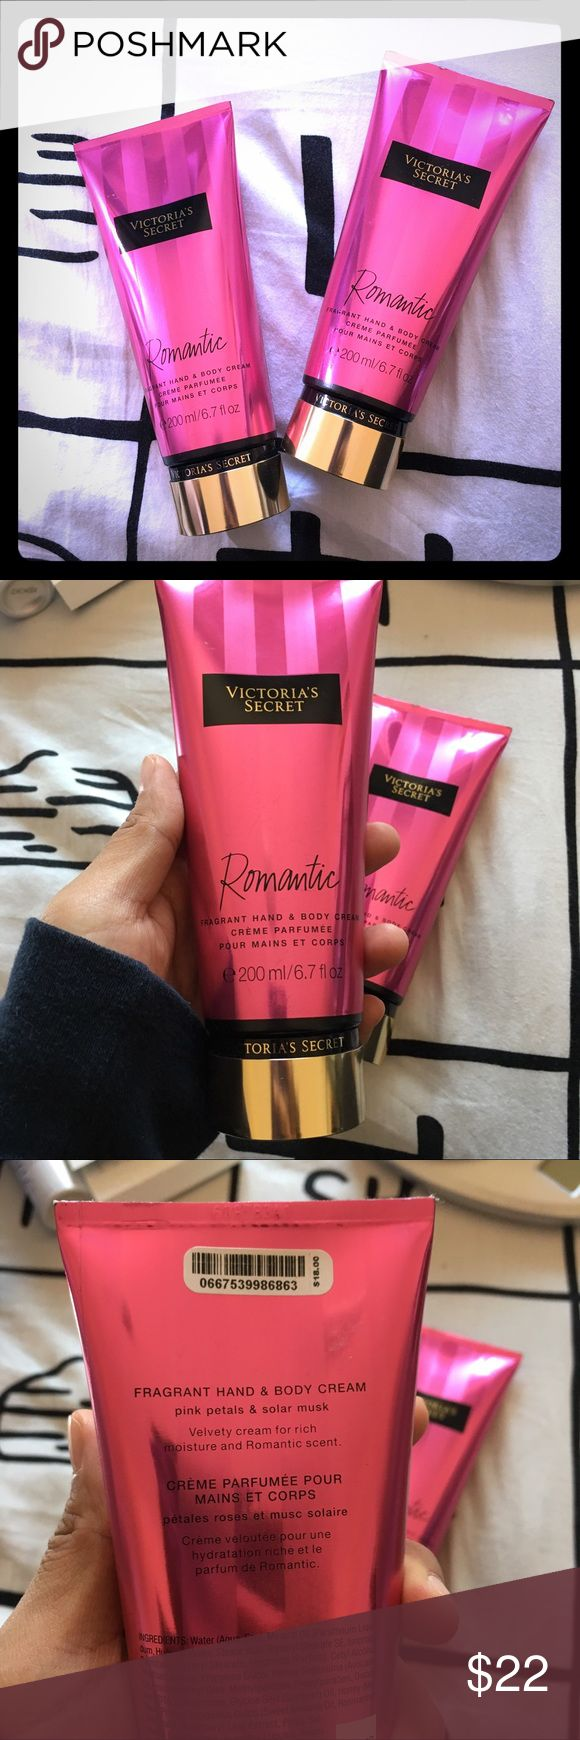 "NWT VICTORIAS SECRET HAND BODY LOTION BUNDLE NWT VICTORIAS SECRET HAND BODY LOTION BUNDLE of 2 pieces. Each of them is new with TAG. 200ml each. ""Romantic"" creme perfume hand and body lotion from VICTORIAS SECRET. Originally $18 each. $36 in value. Get it now for only $22! Victoria's Secret Accessories"